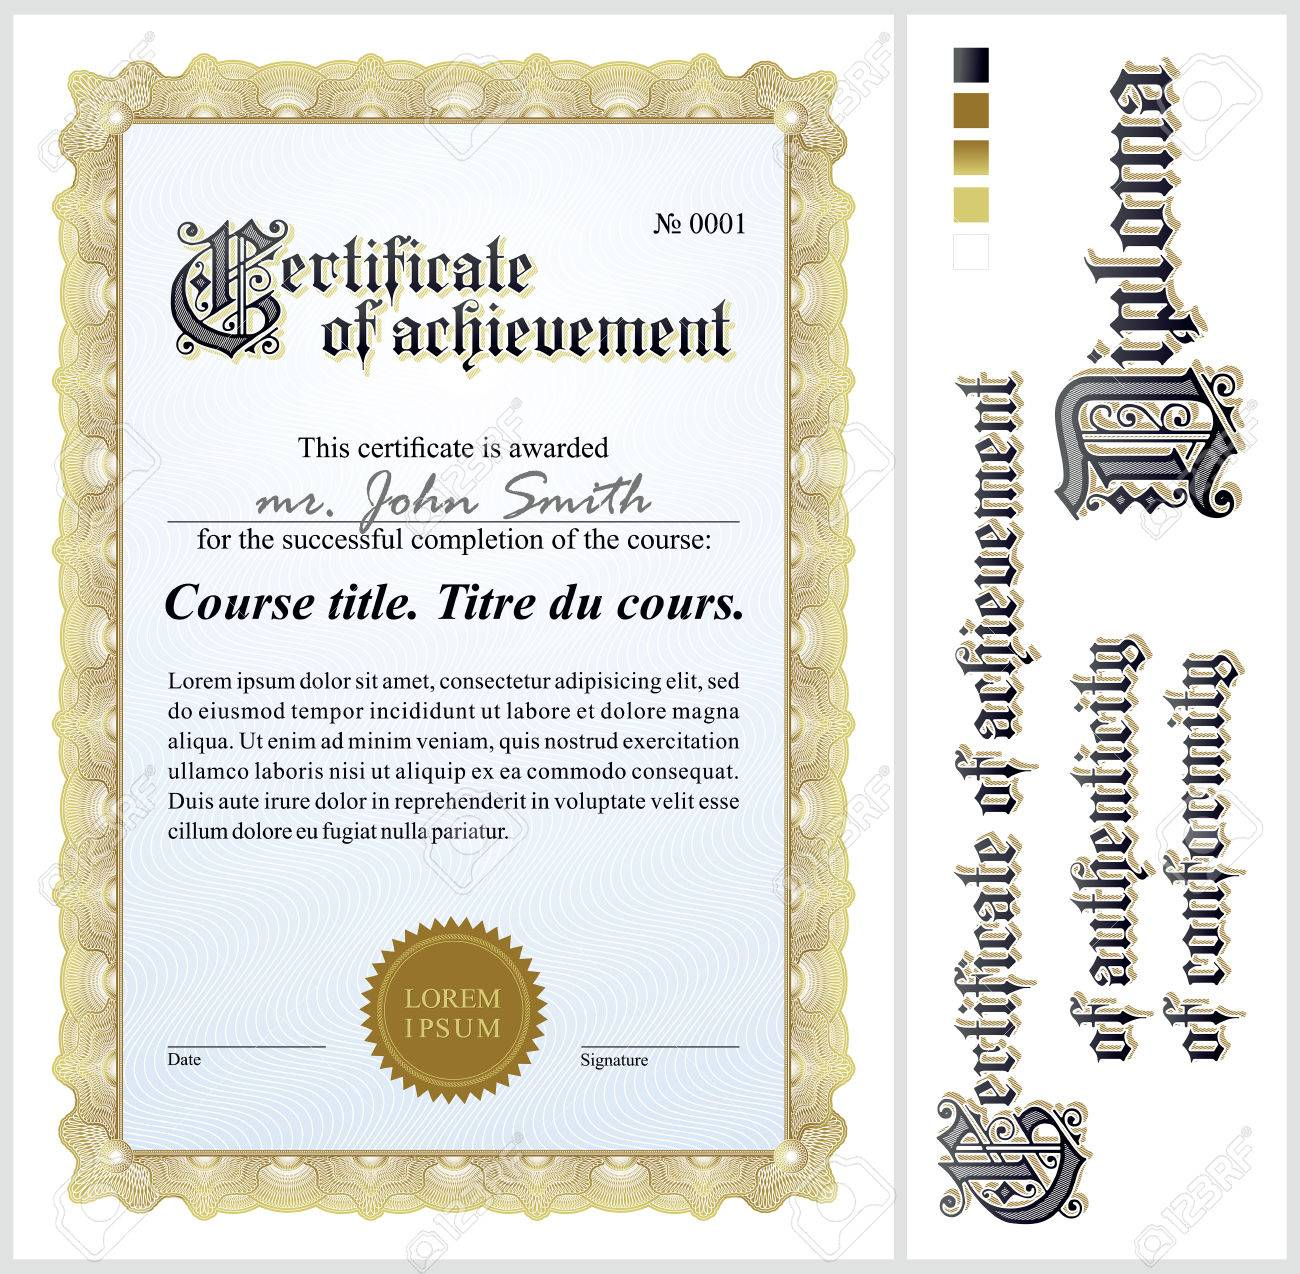 Gold certificate template vertical additional design elements gold certificate template vertical additional design elements stock vector 29378991 yadclub Choice Image